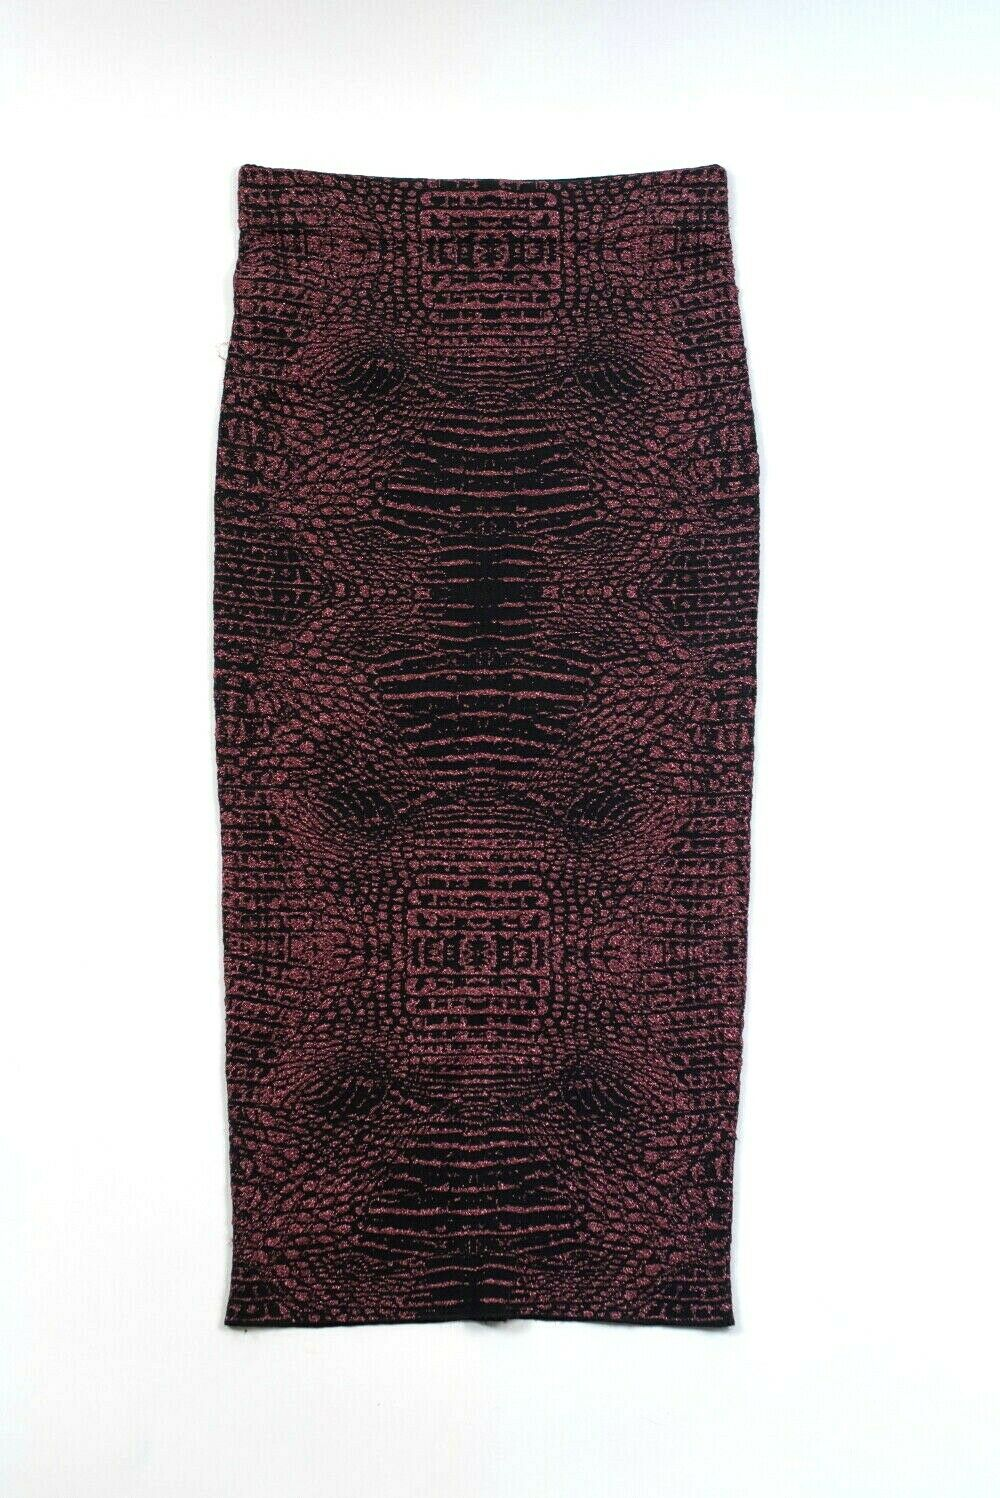 Torn by Ronny Kobo Womens Small Black Pink Skirt Midi Pencil Snake Knit Metallic